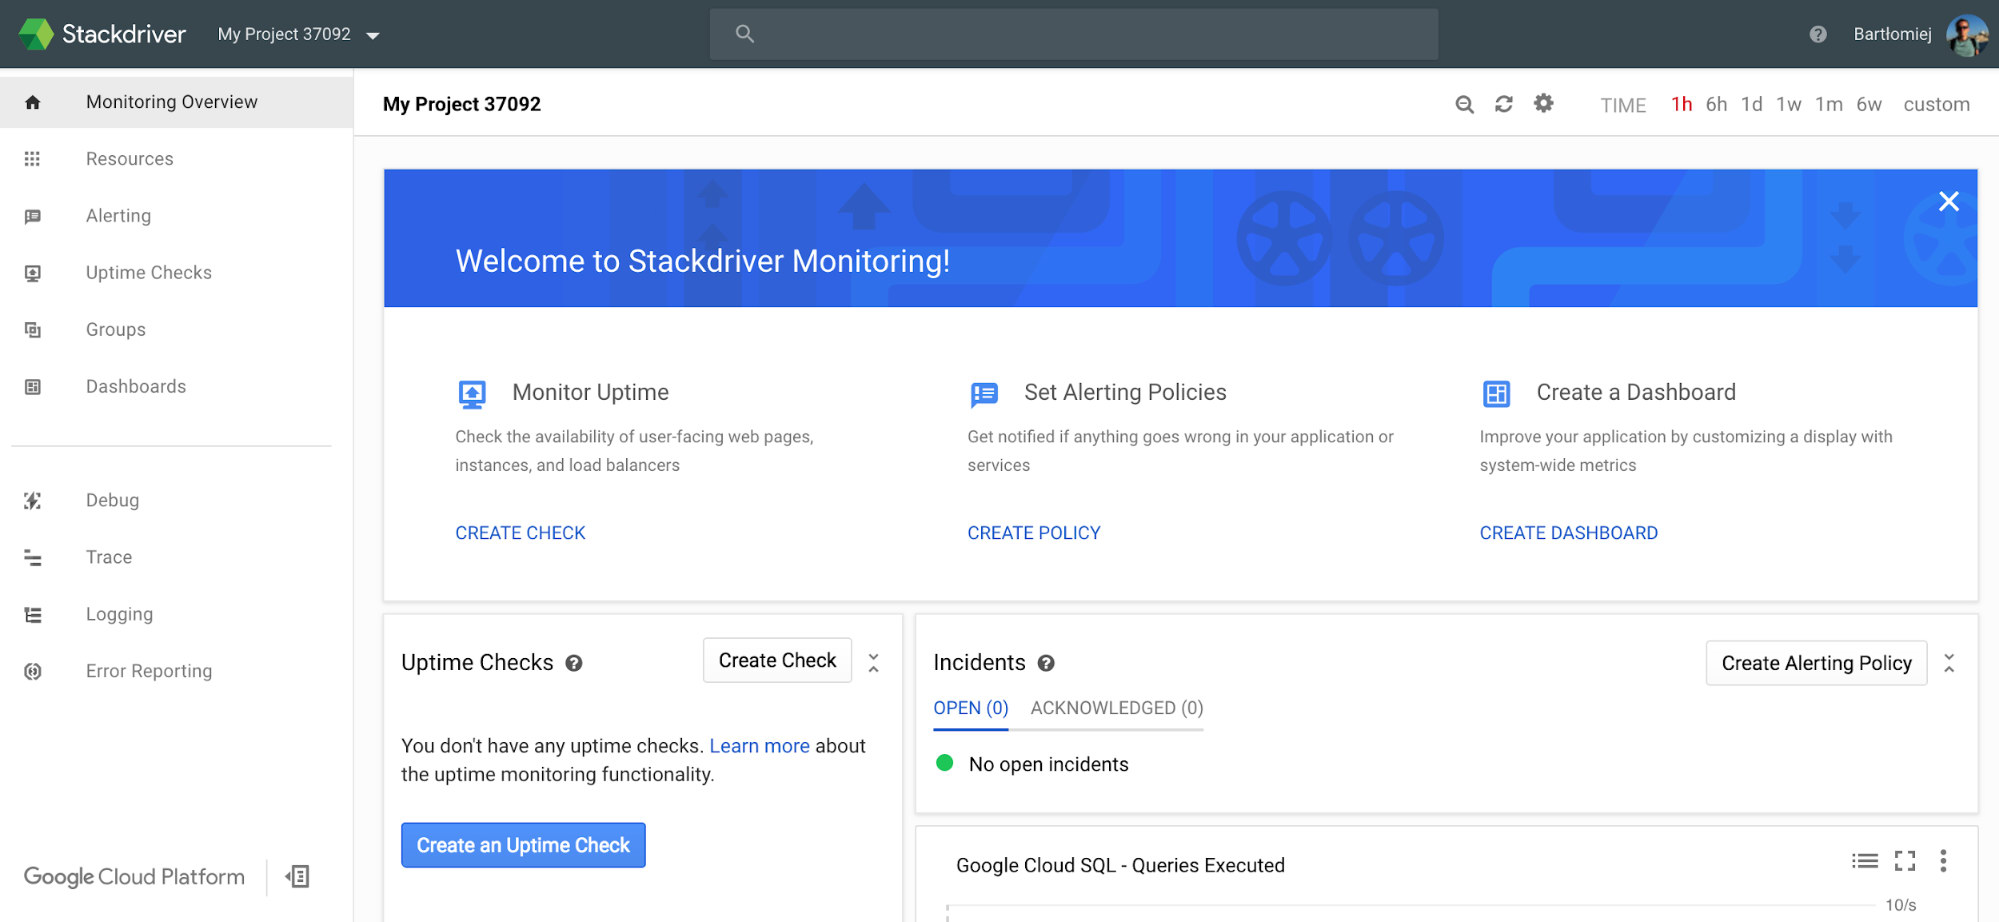 Google Stackdriver monitoring dashboard